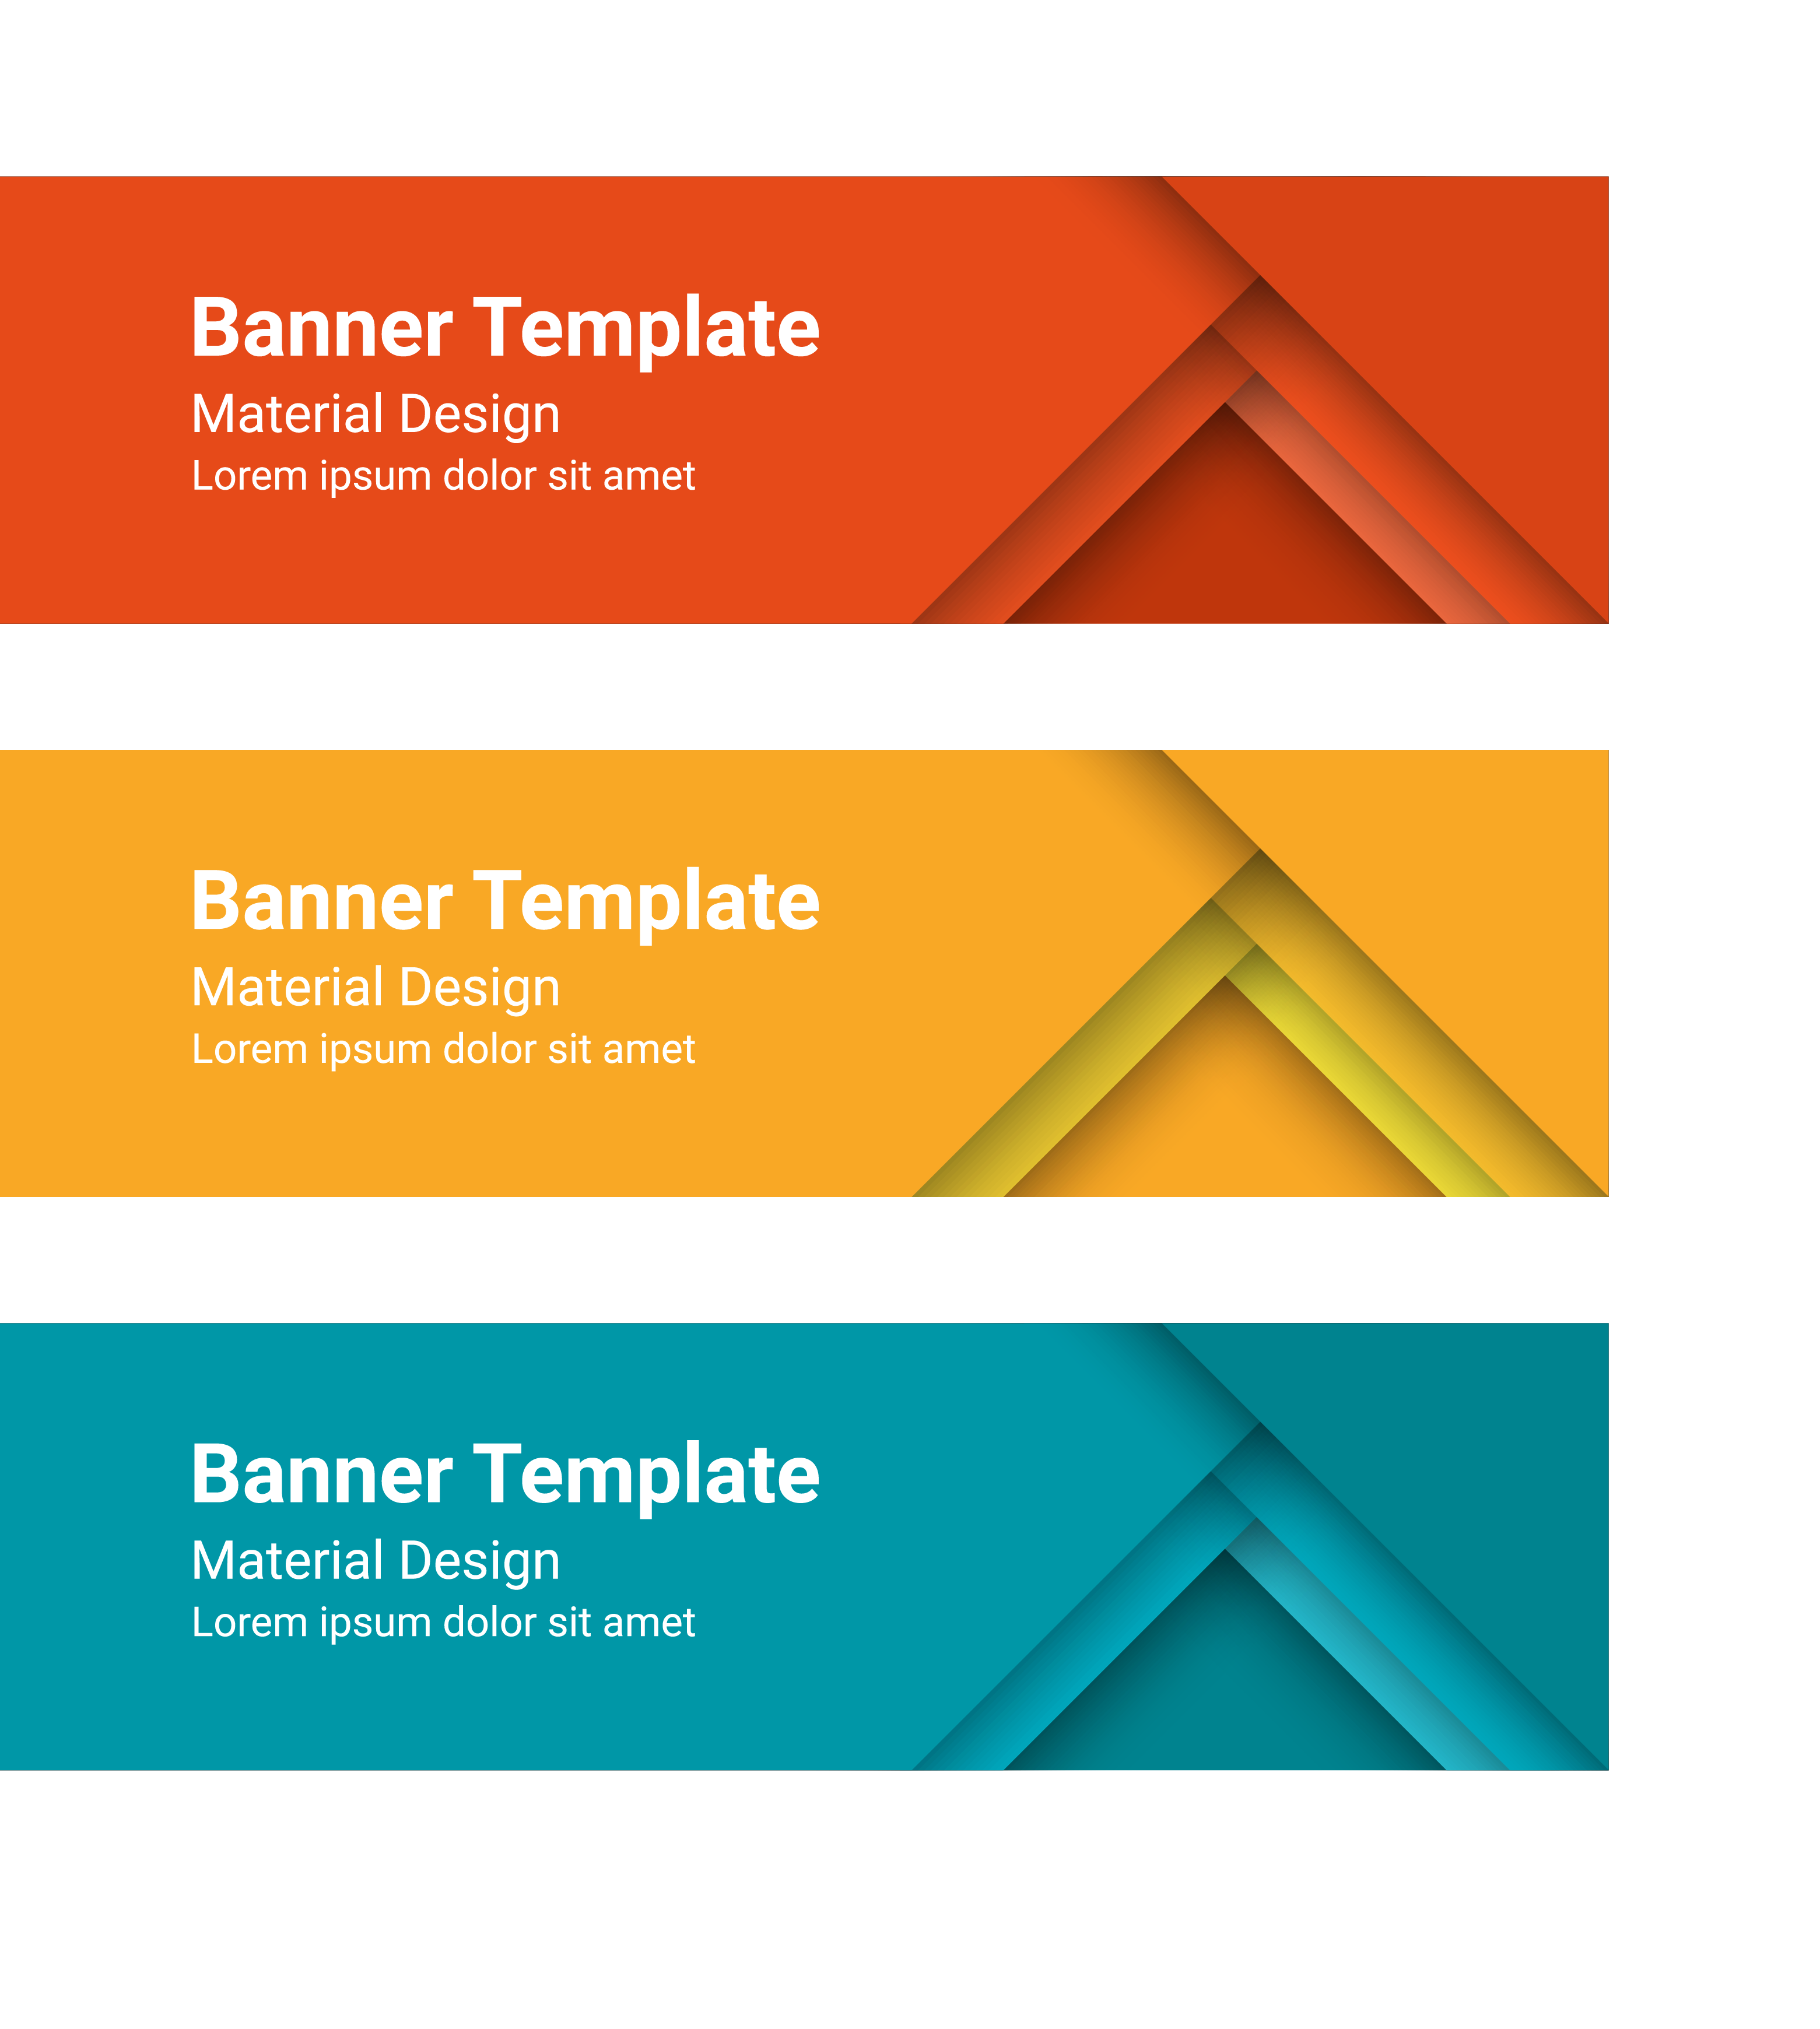 Vector banner graphics design png. Web template material transprent